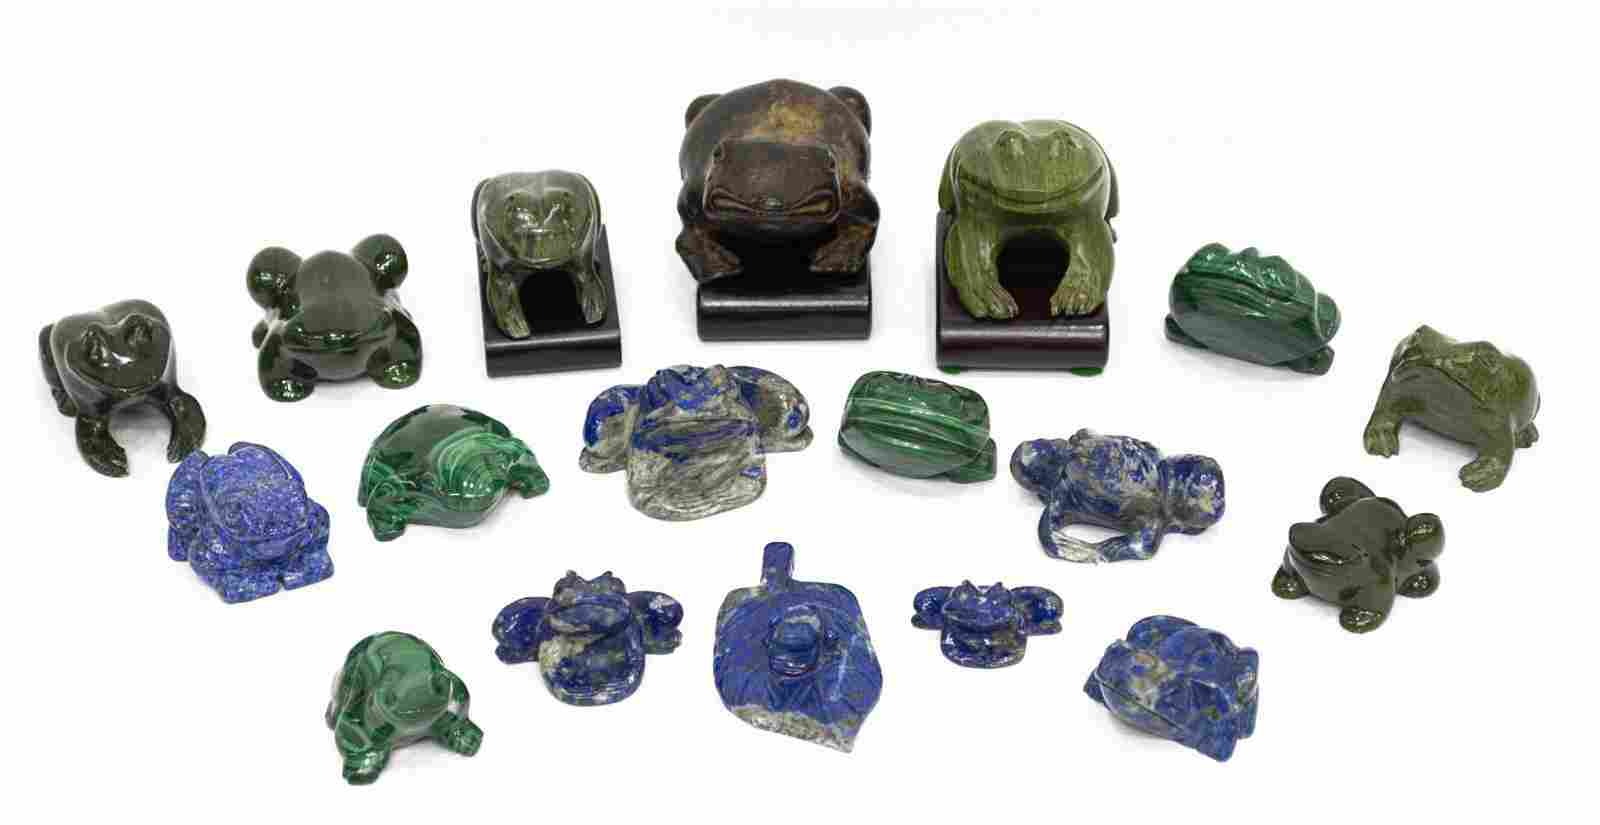 18) CARVED MALACHITE, JADE & OTHER HARDSTONE FROGS